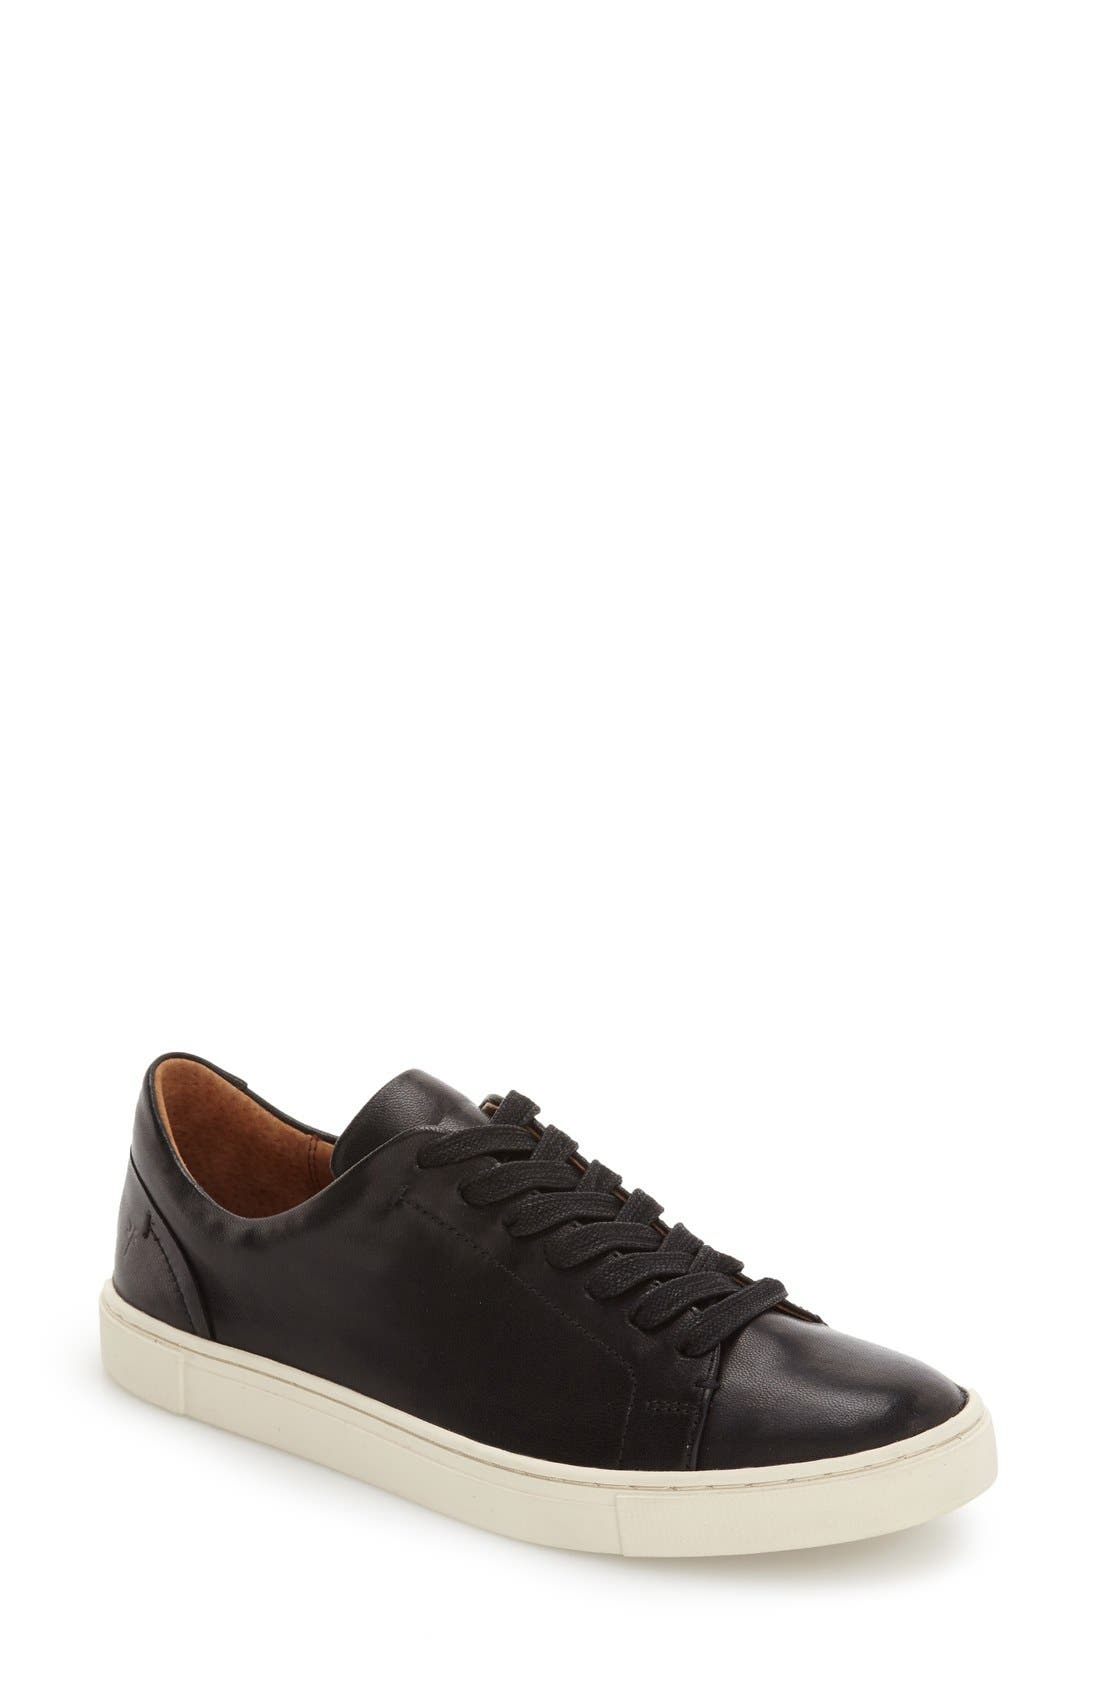 Ivy Sneaker,                             Main thumbnail 1, color,                             Black Leather